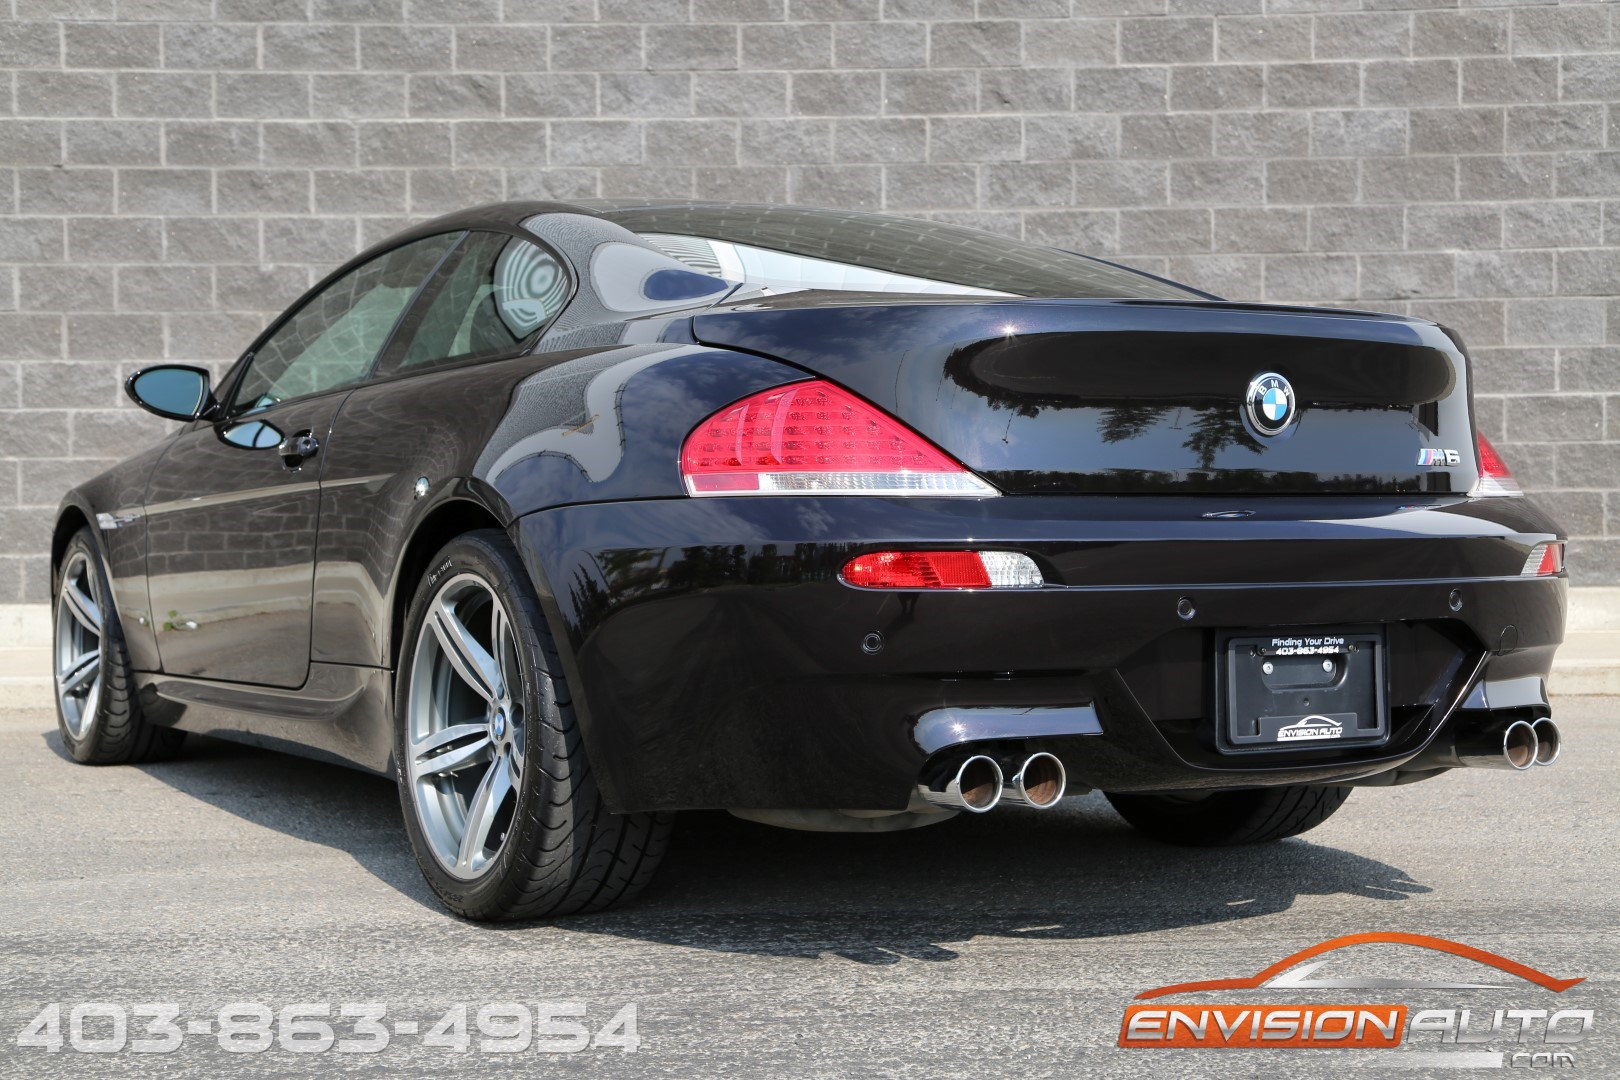 2006 bmw m6 individual full service history only 71k kms. Black Bedroom Furniture Sets. Home Design Ideas